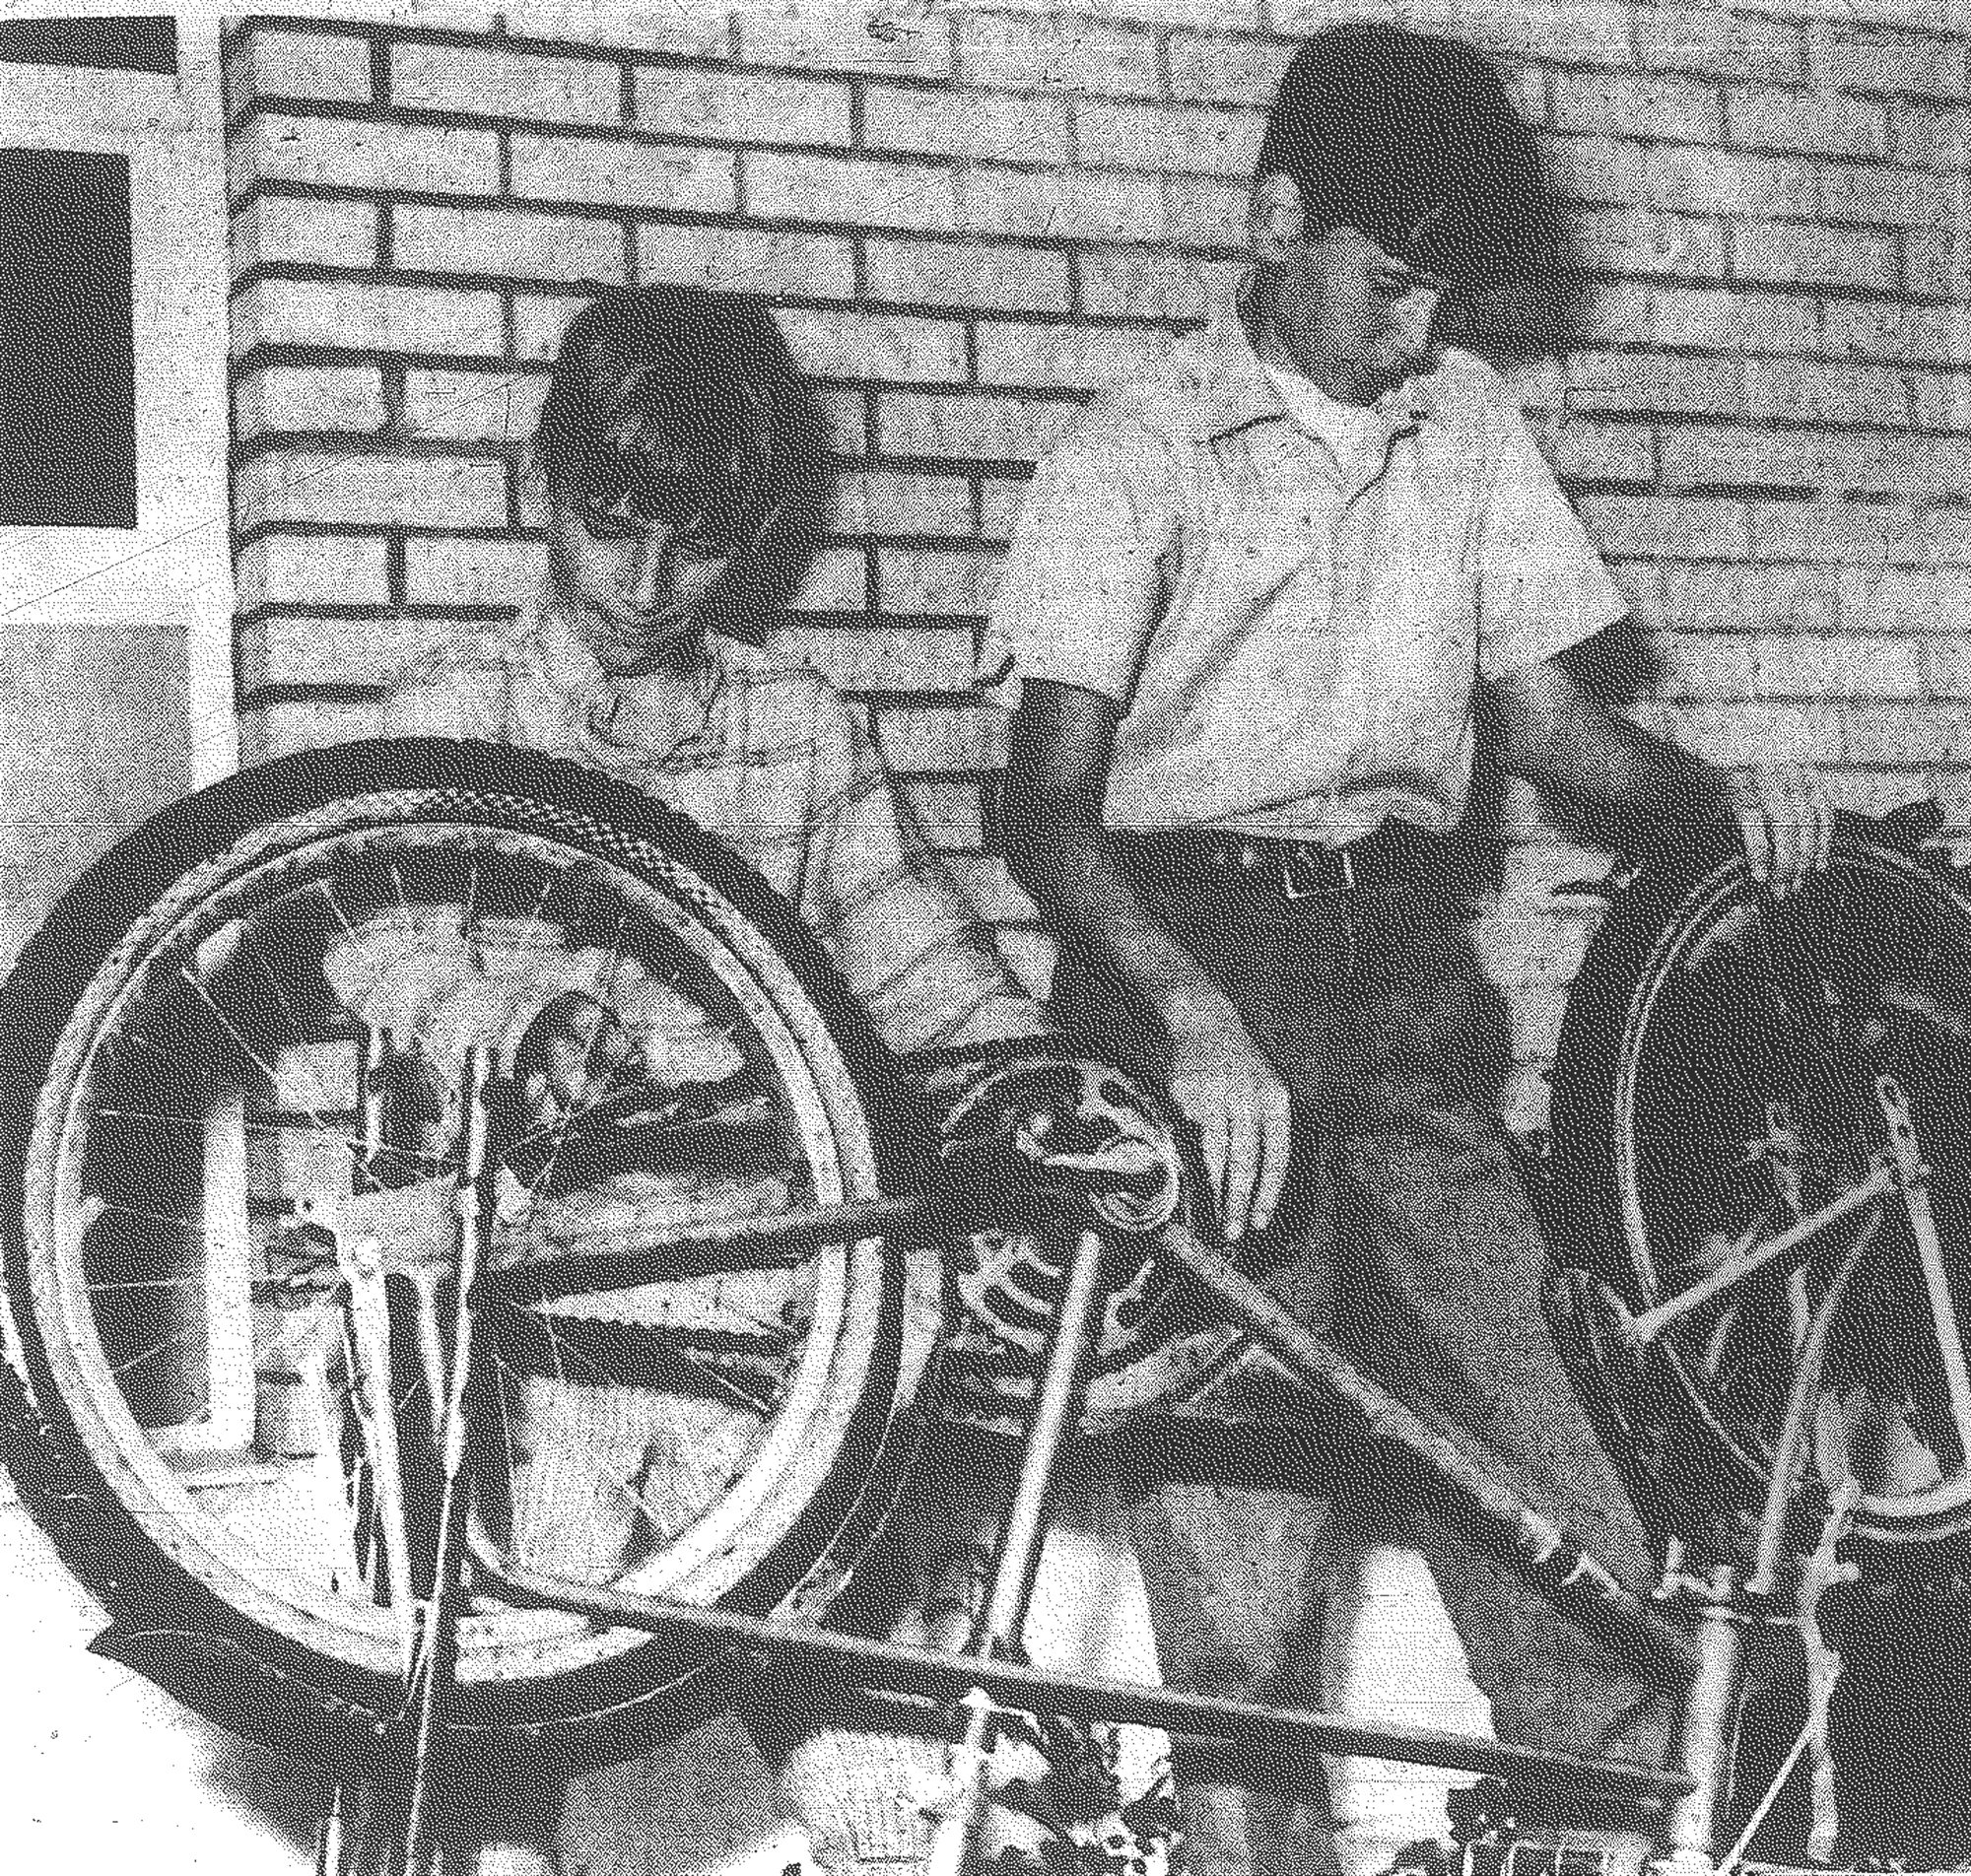 1970 - Two Item carriers get their two-wheelers in shape May 25 for a Bicycle Rodeo at the Sumter County Library with a parade down Harvin Street. The rodeo was open to all boys and girls from 6 to 15. Winners were chosen for having the most beautiful bike, most original and most artistic.